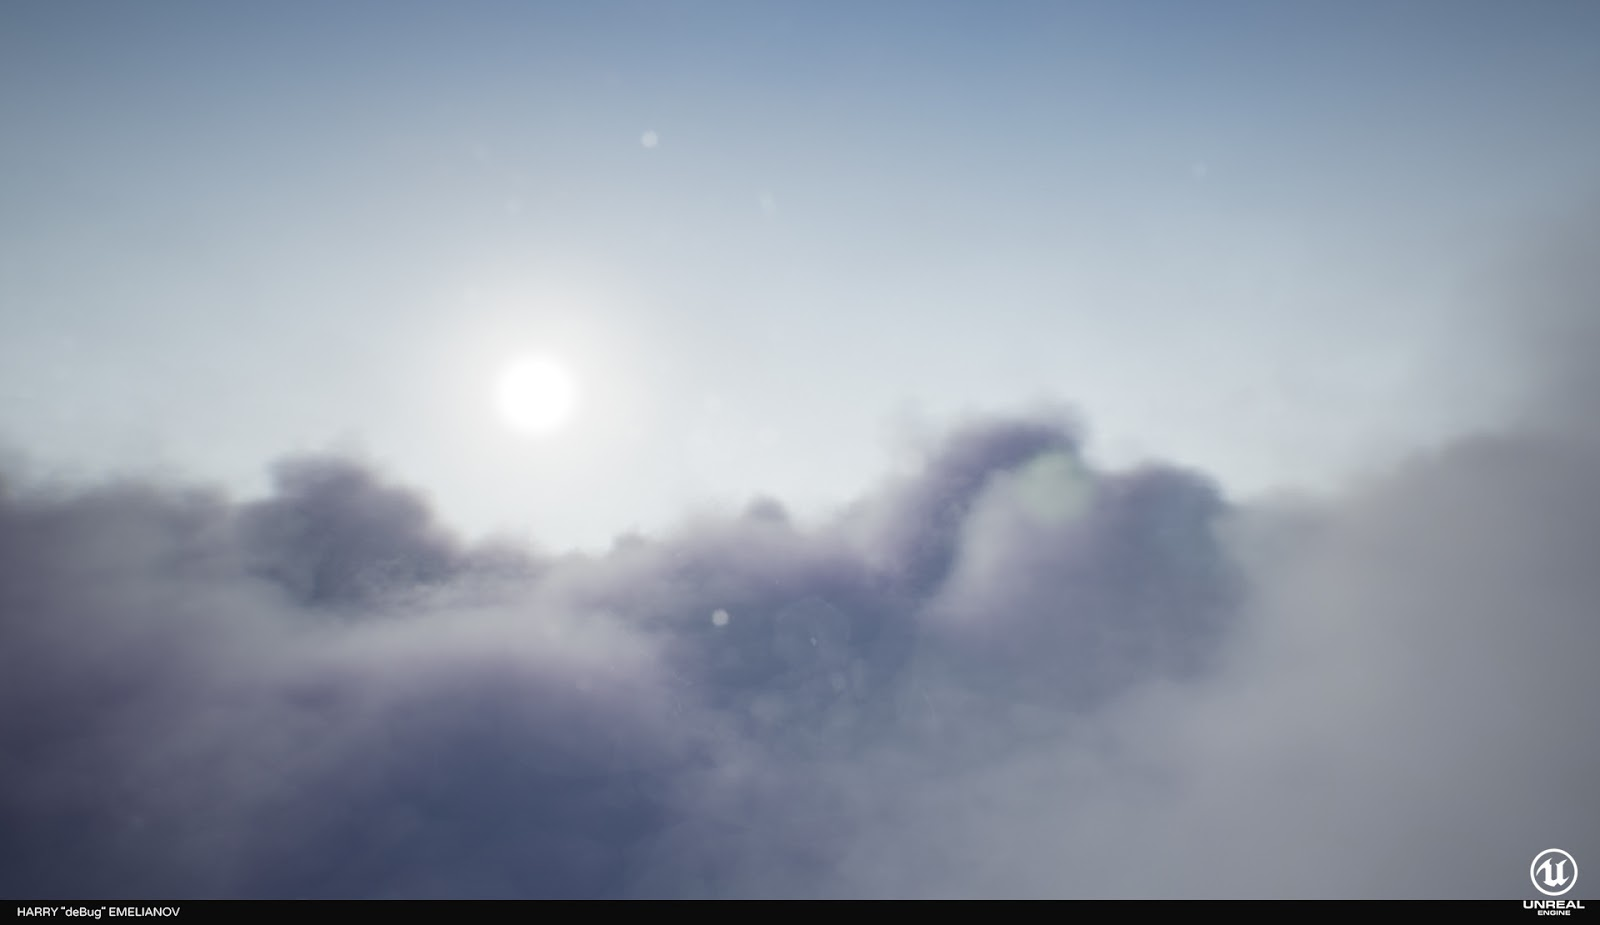 Download Free Volumetric Clouds for Unreal Engine | Computer